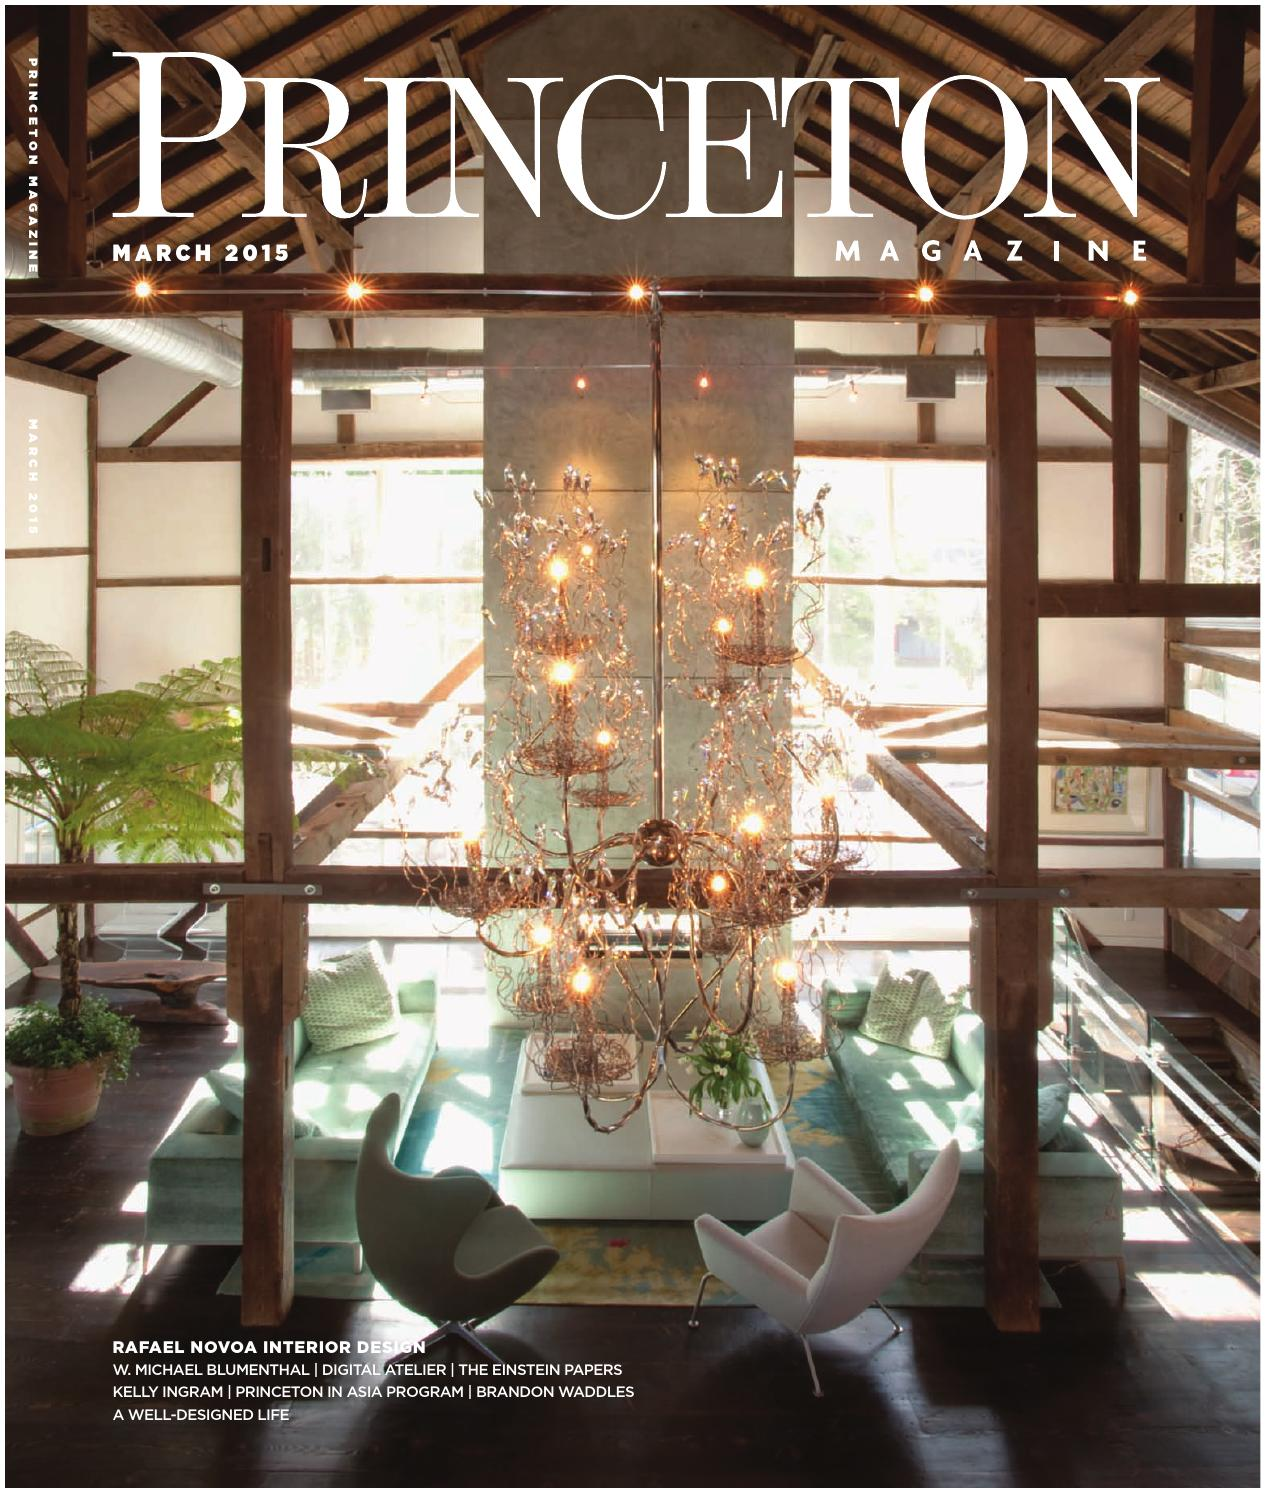 Princeton Magazine, March 2015 by Witherspoon Media Group - issuu